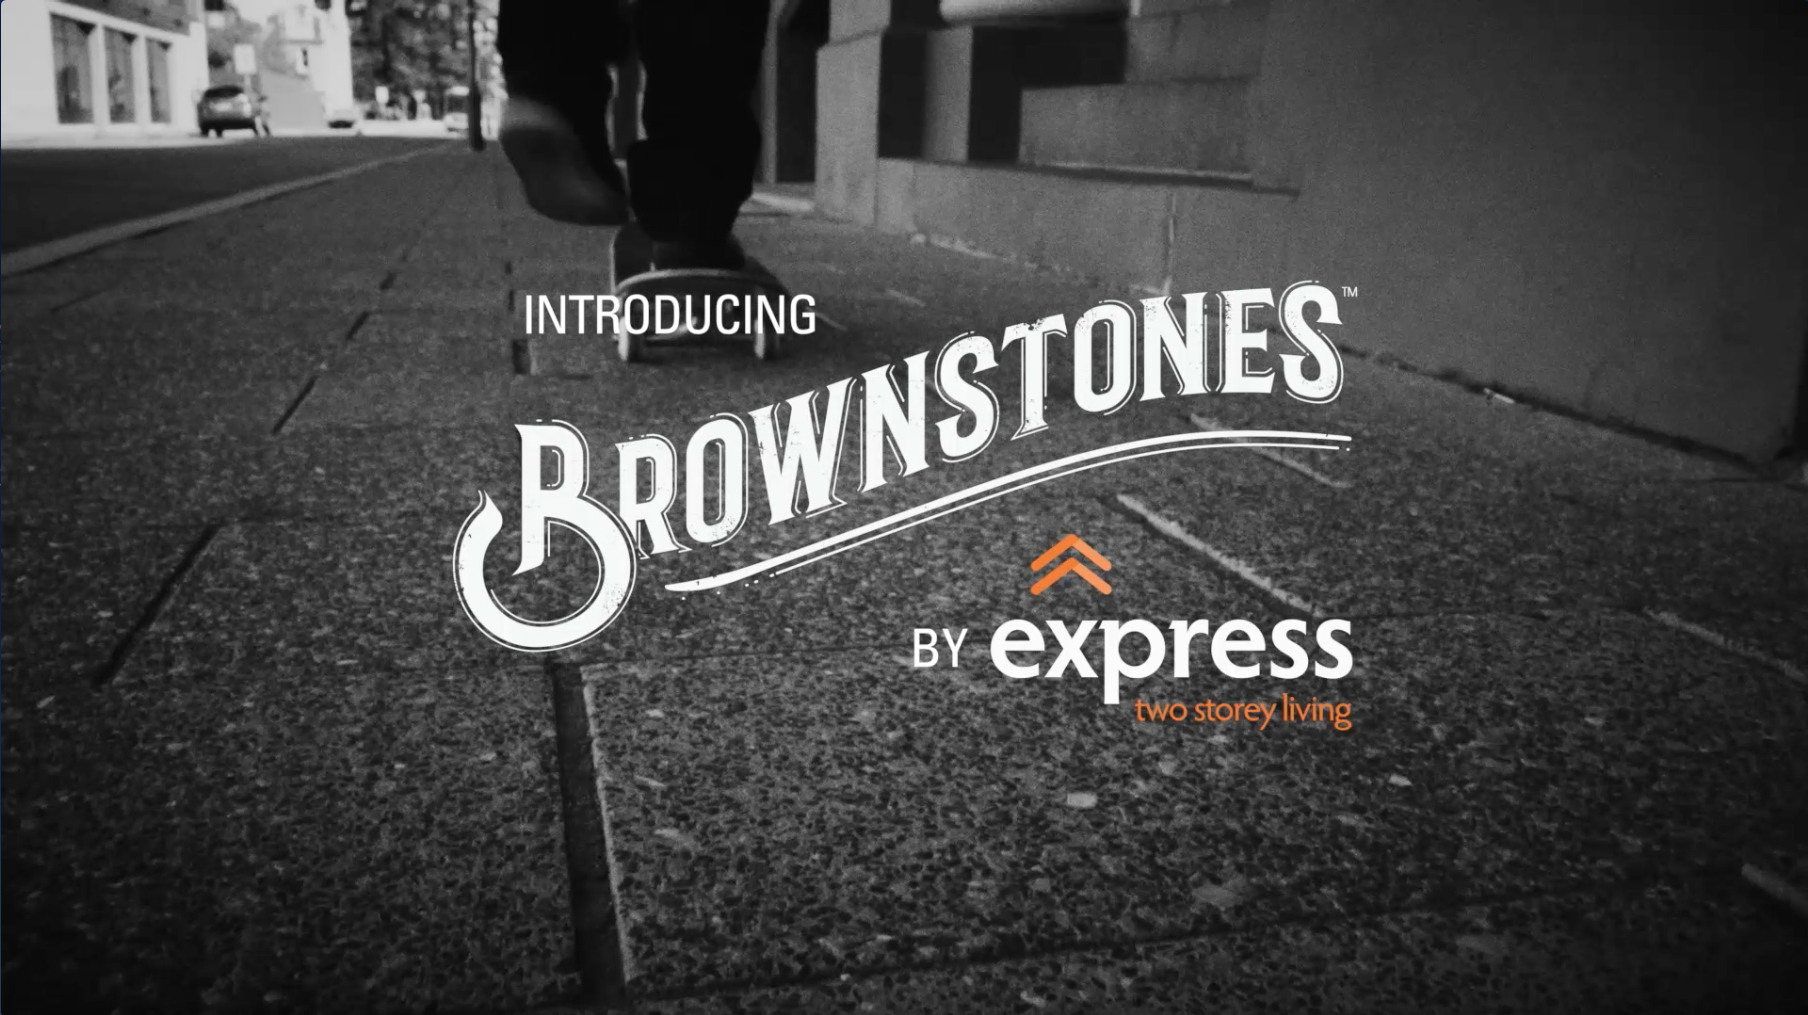 House of Burch David Burch Brownstones Express Two Storey